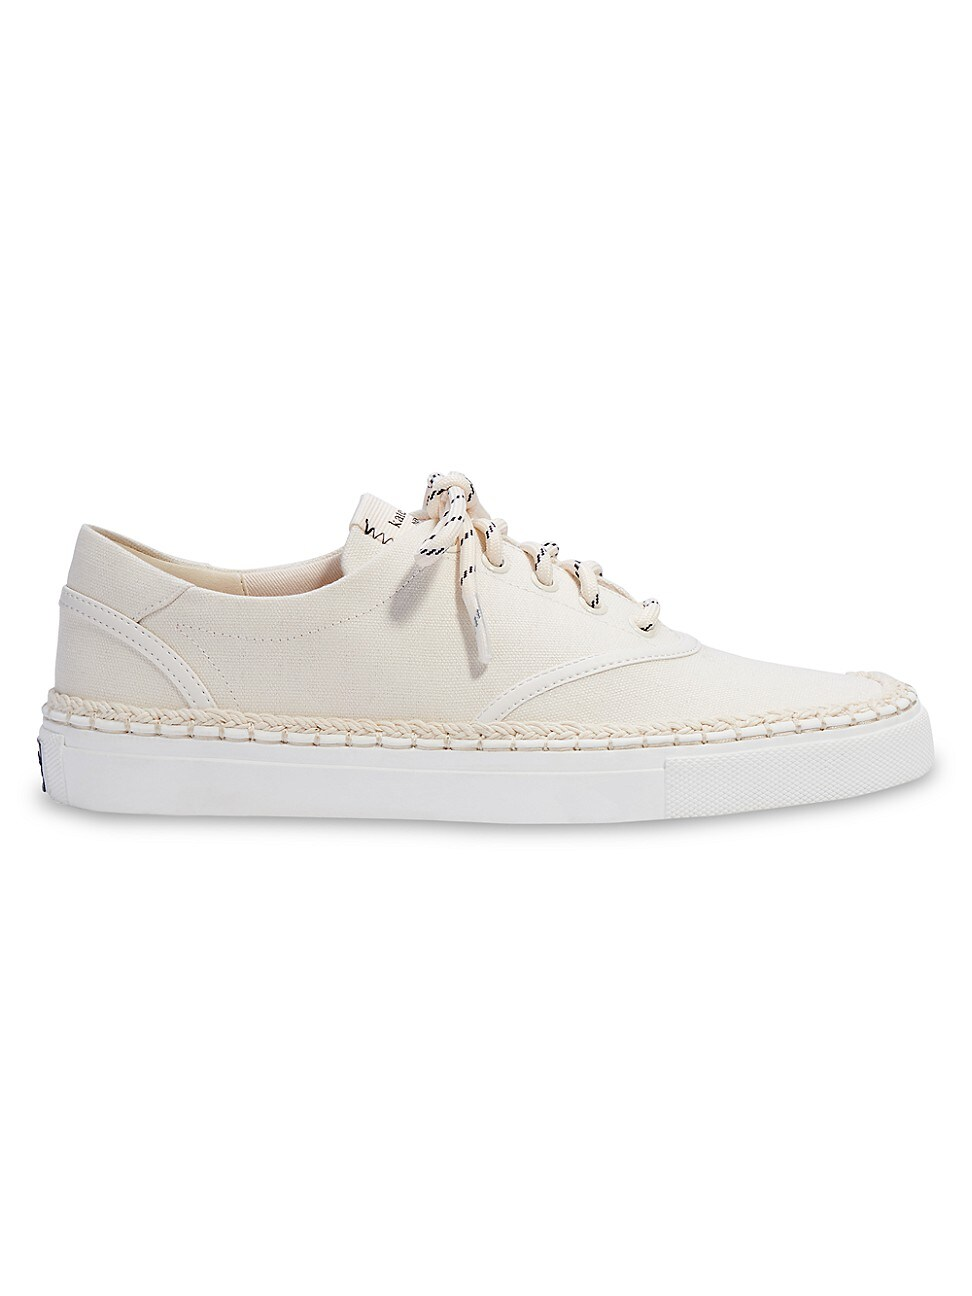 Kate Spade WOMEN'S BOAT PARTY LACE-UP LOW-TOP SNEAKERS